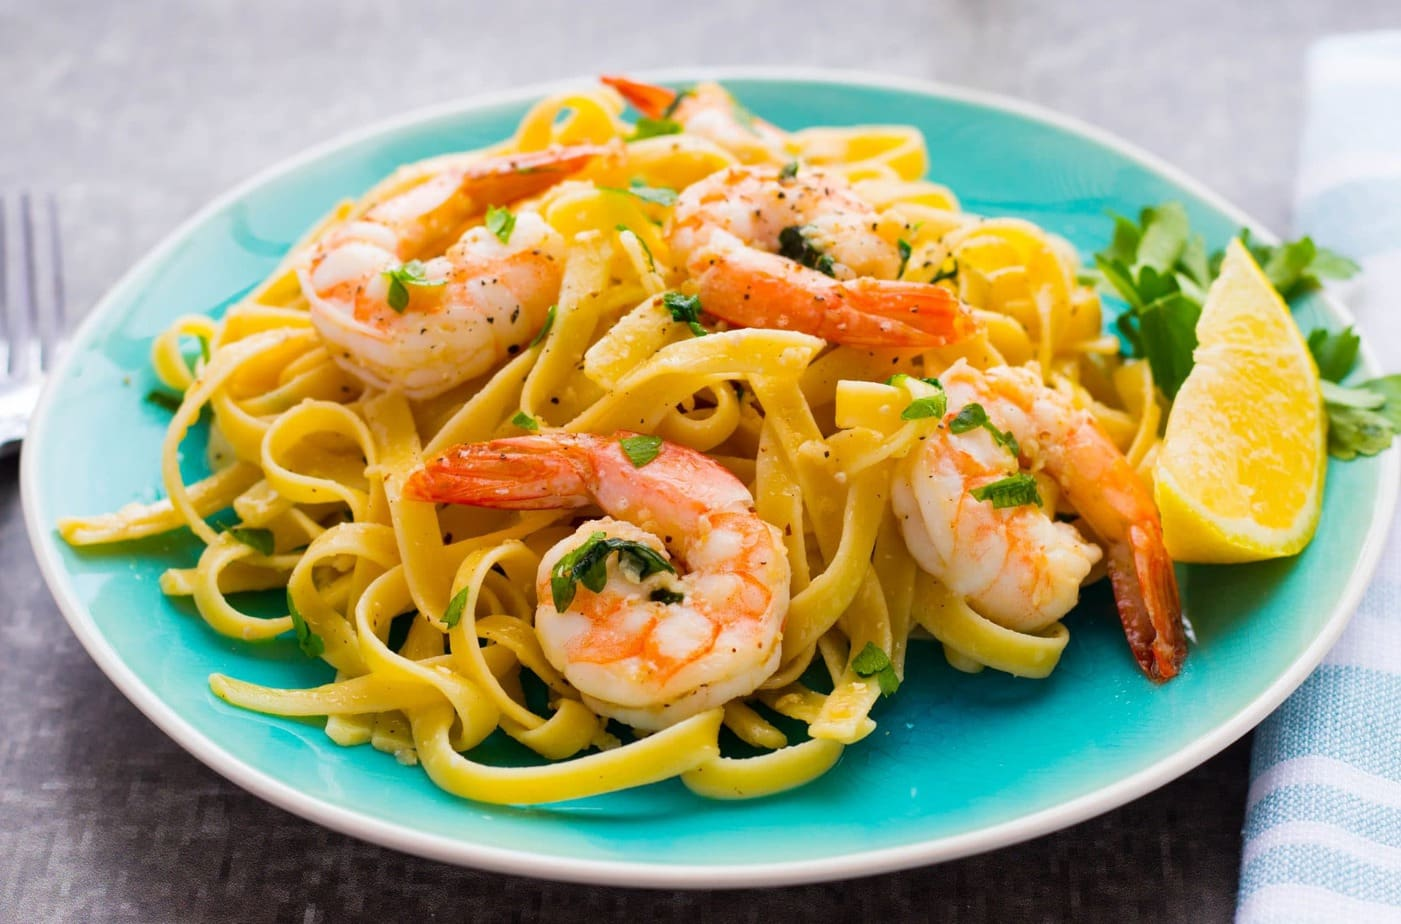 Easy Shrimp Scampi Fettuccine is ready in 20 min with only a few ingredients! It's full of garlic flavor and the perfect weeknight meal!